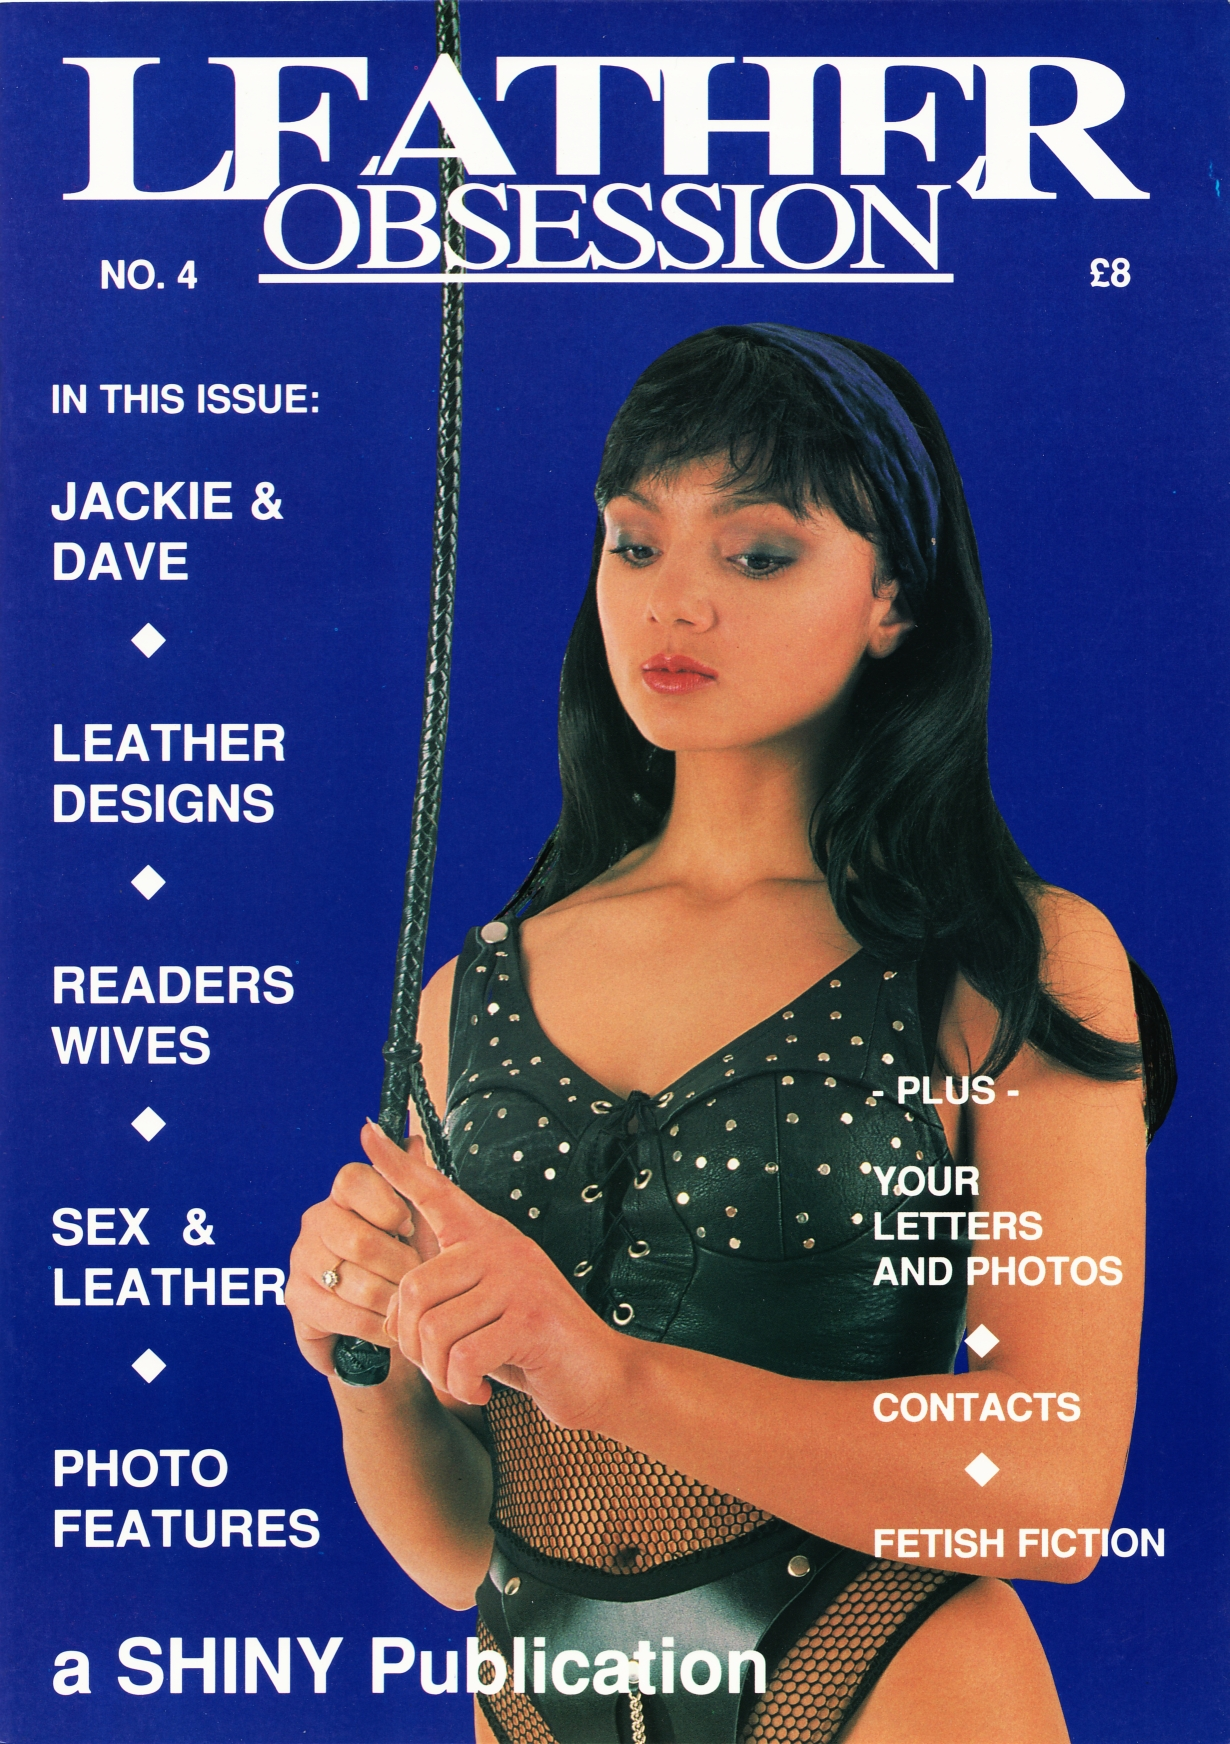 855738562_LeatherObsession4FrontCover_122_1185lo.jpg